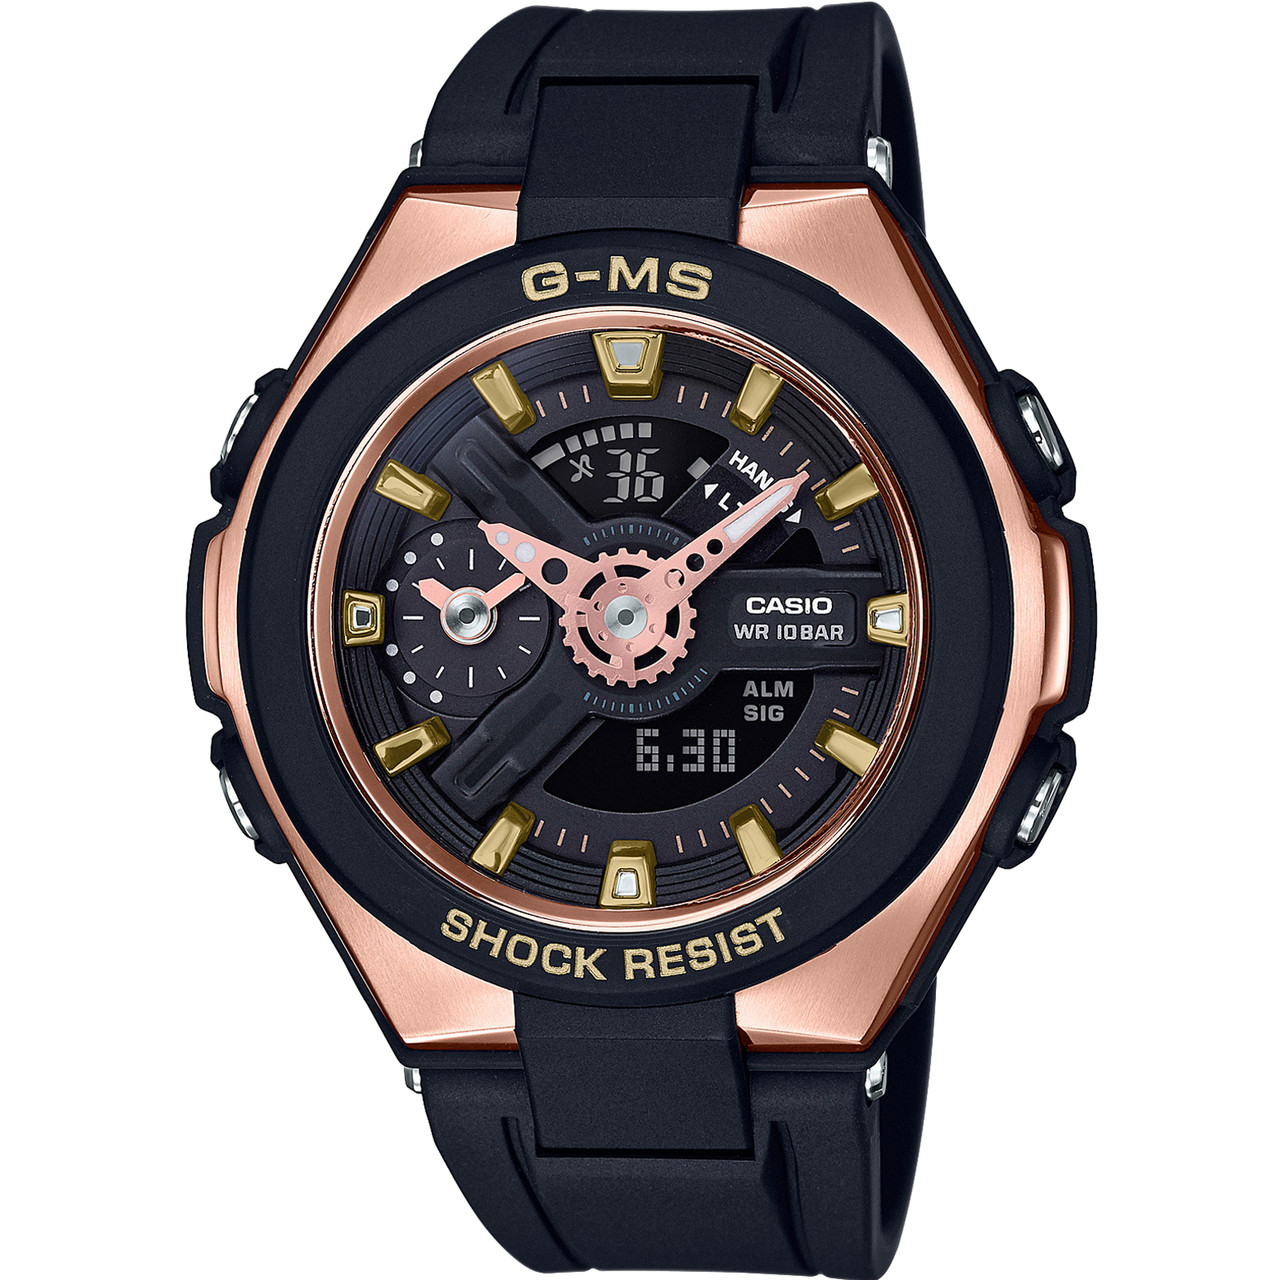 a7d1bcec0ed Casio Baby-G G-MS Metal Sports Rose Gold Watch MSG-400G-1A1ER